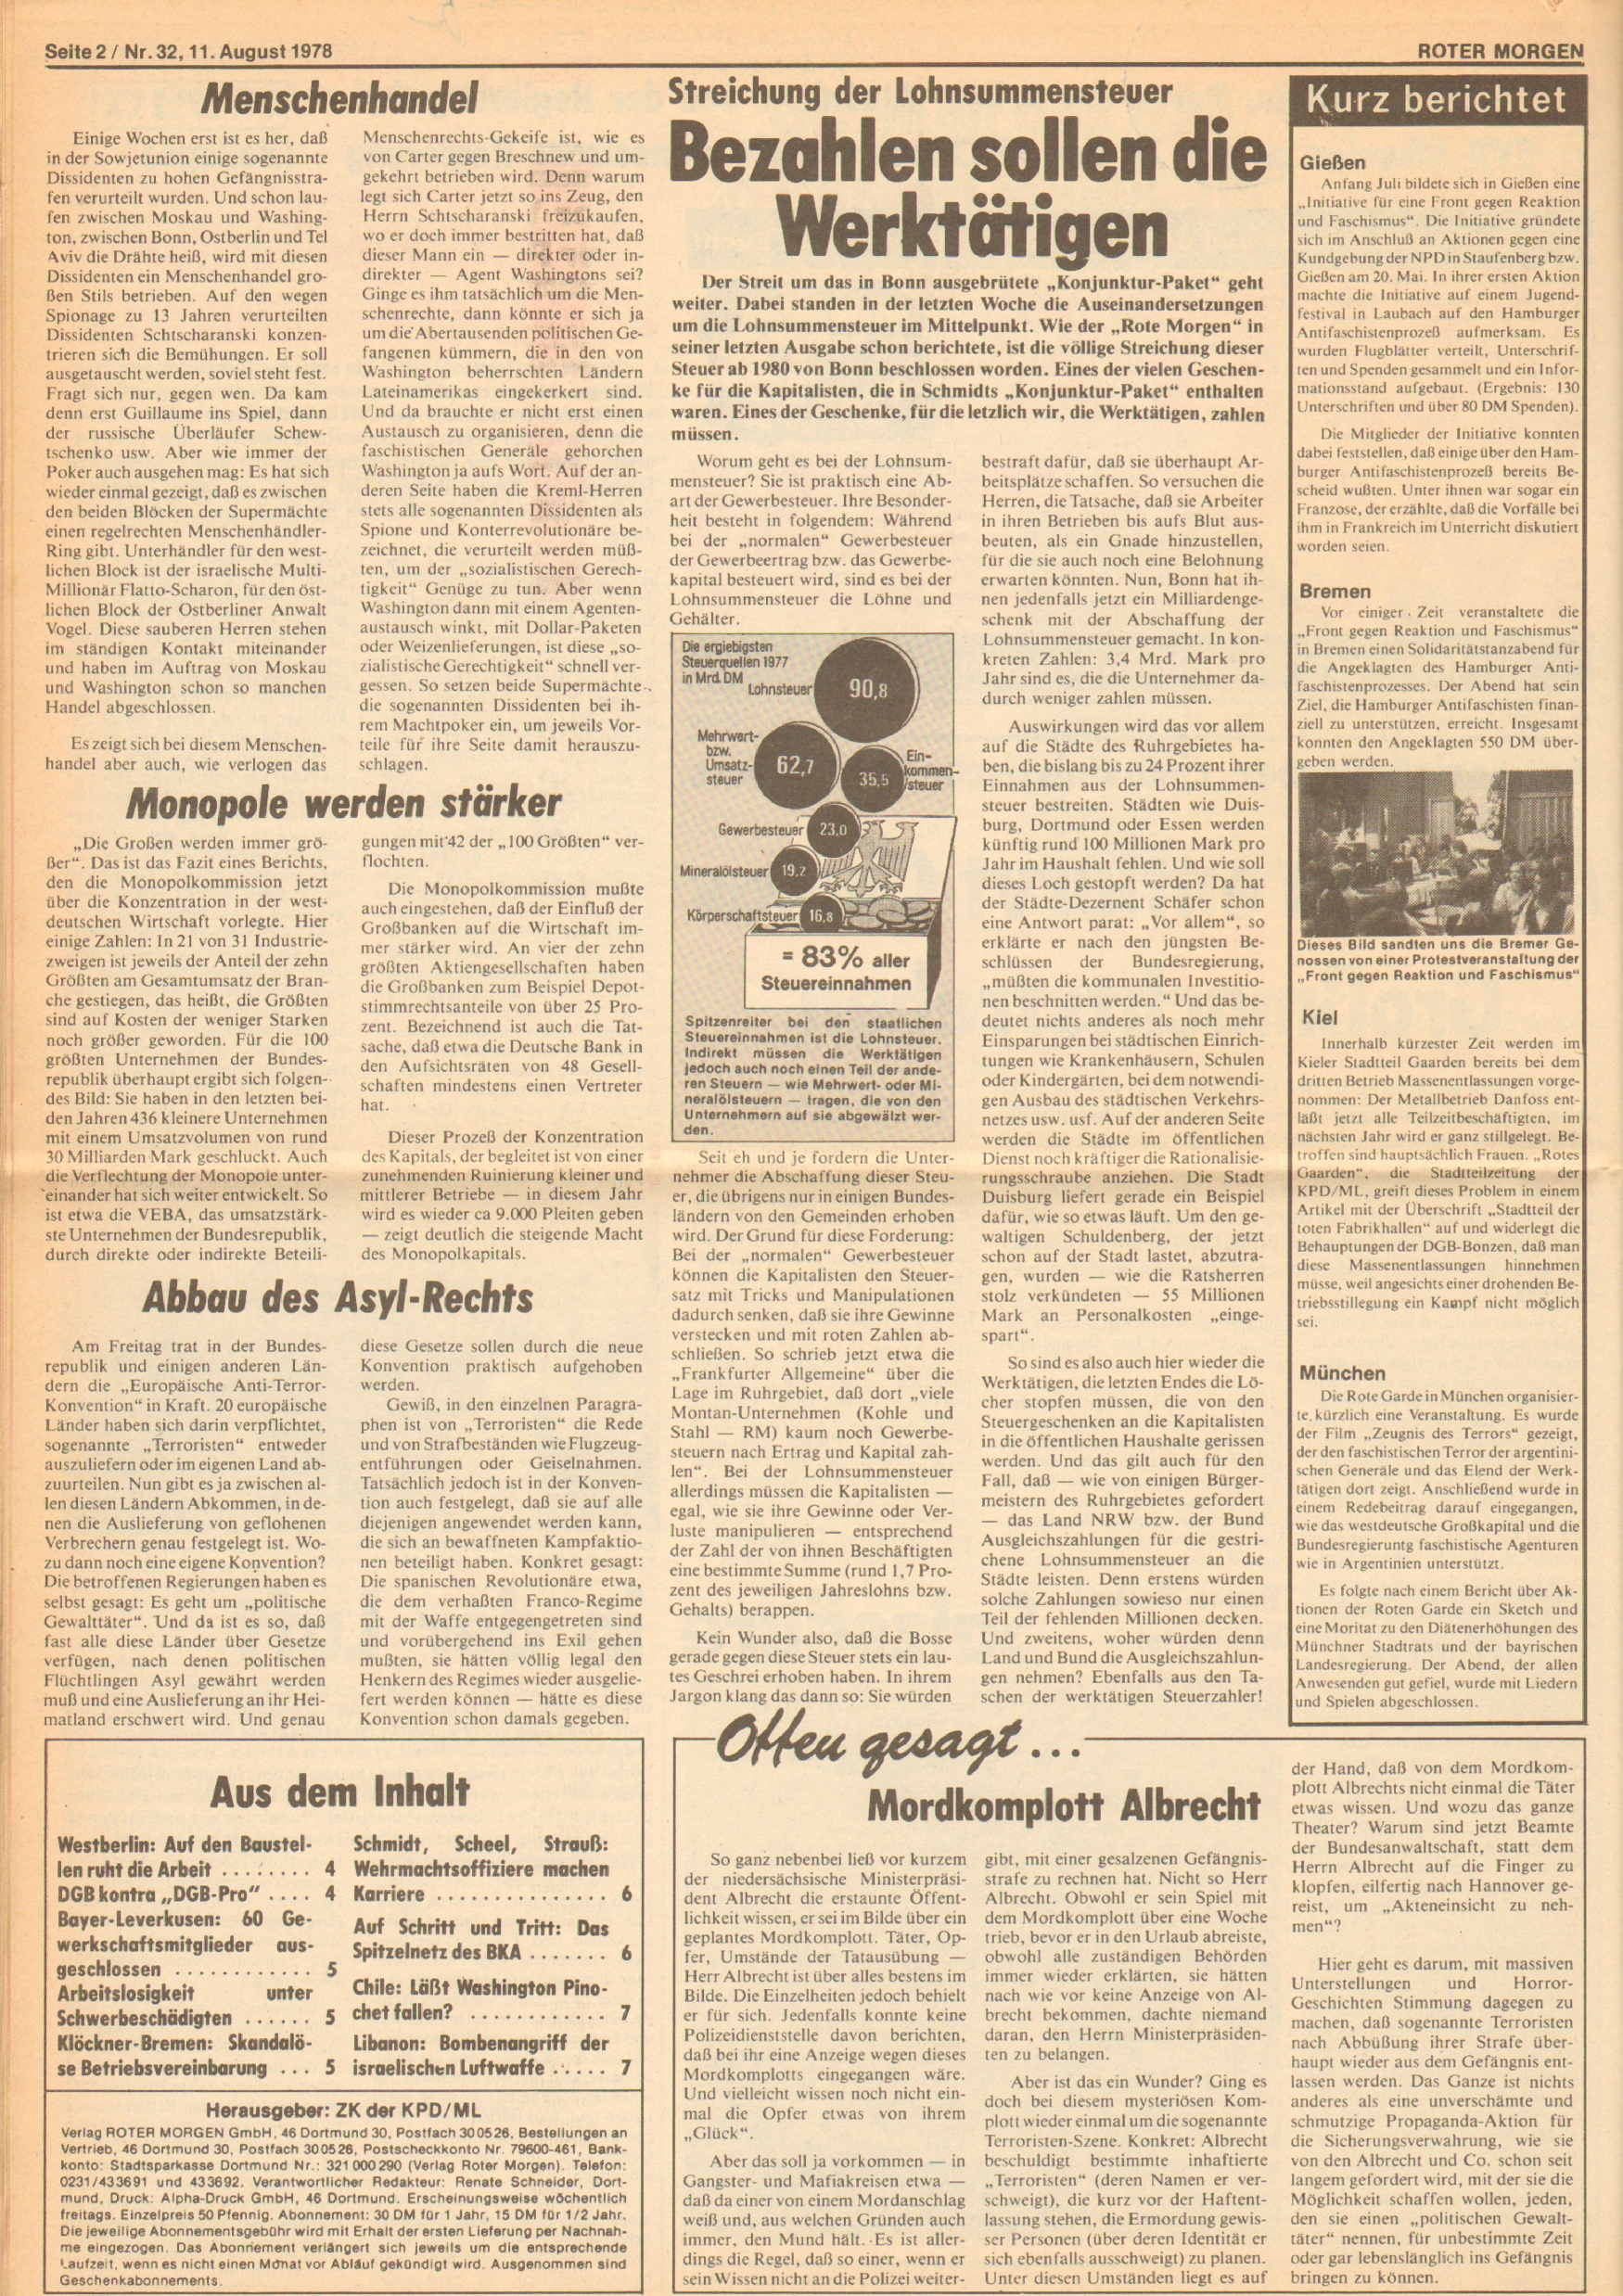 Roter Morgen, 12. Jg., 11. August 1978, Nr. 32, Seite 2